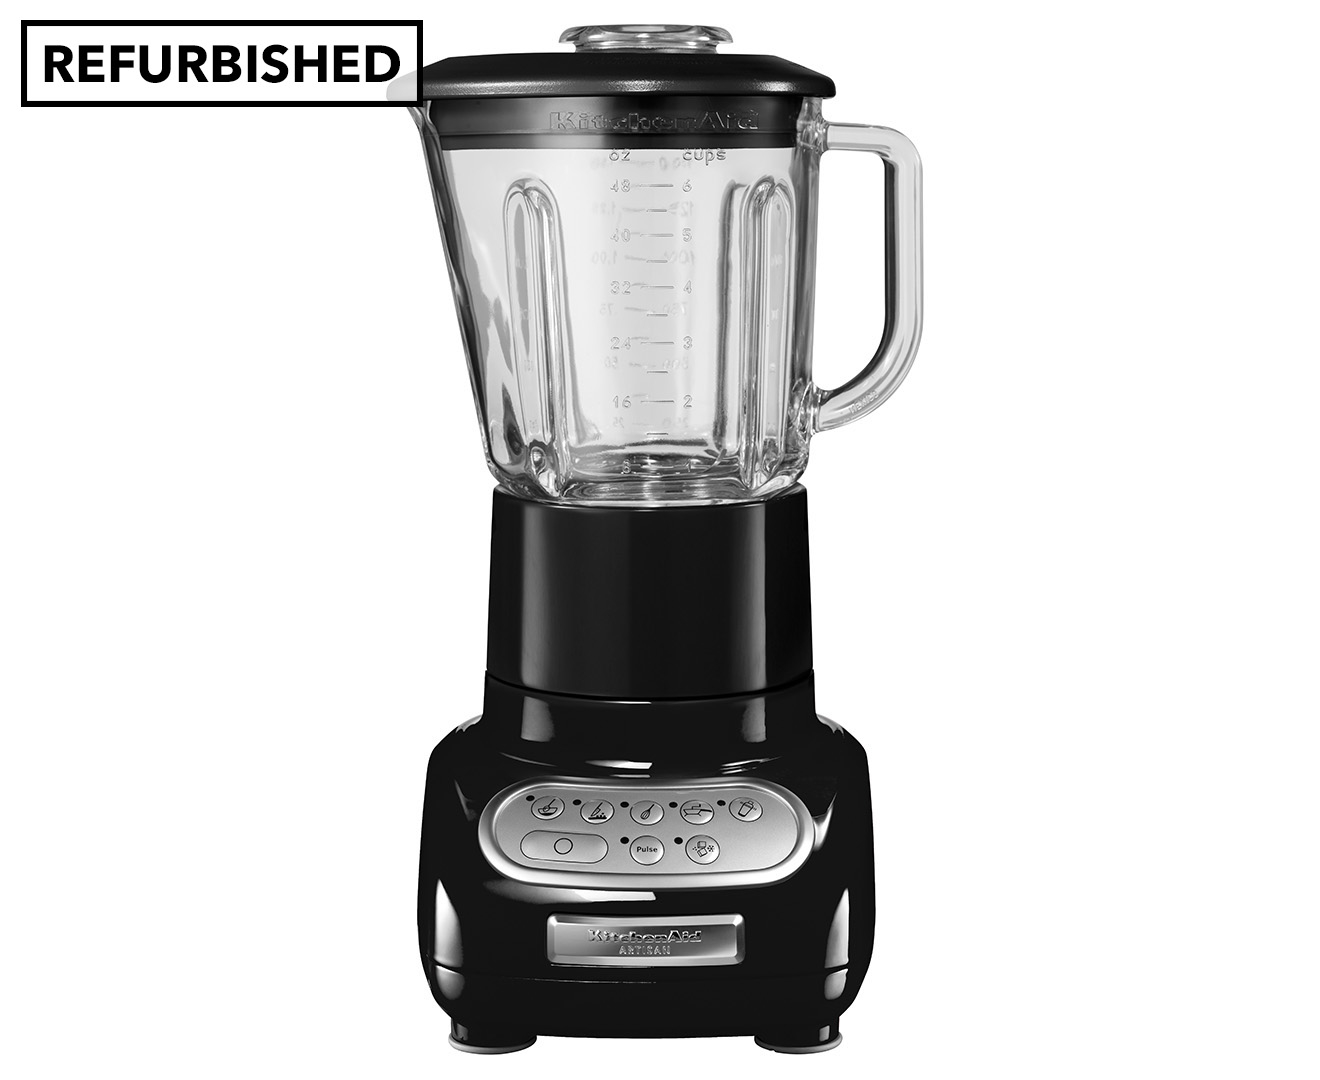 scoopon shopping kitchenaid ksb555 blender refurb black